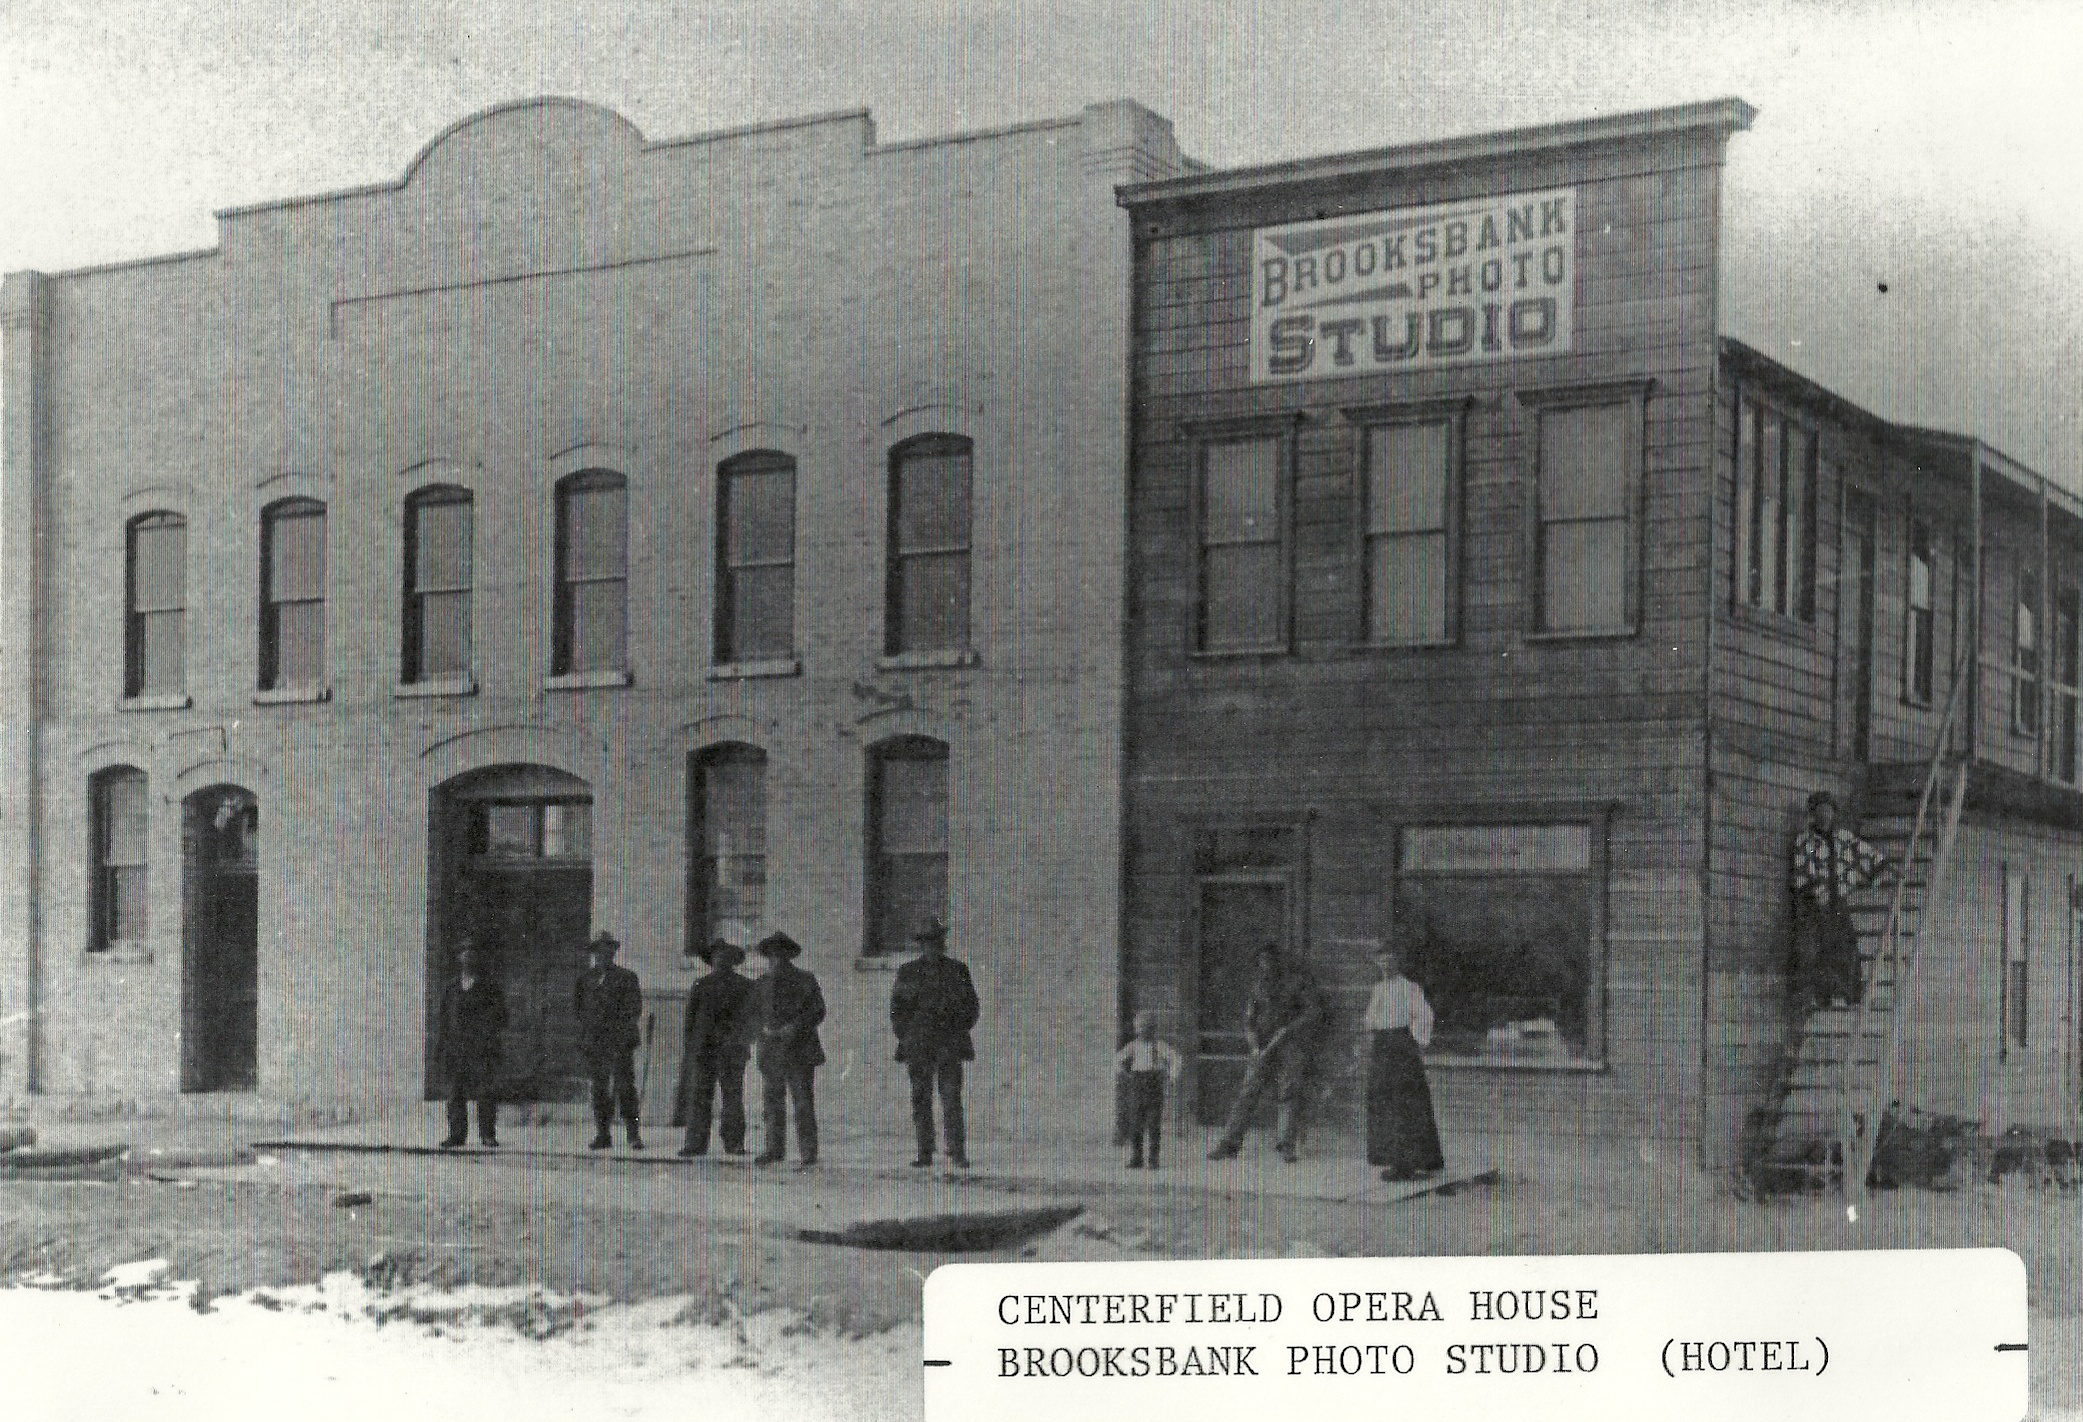 Centerfield Opera House